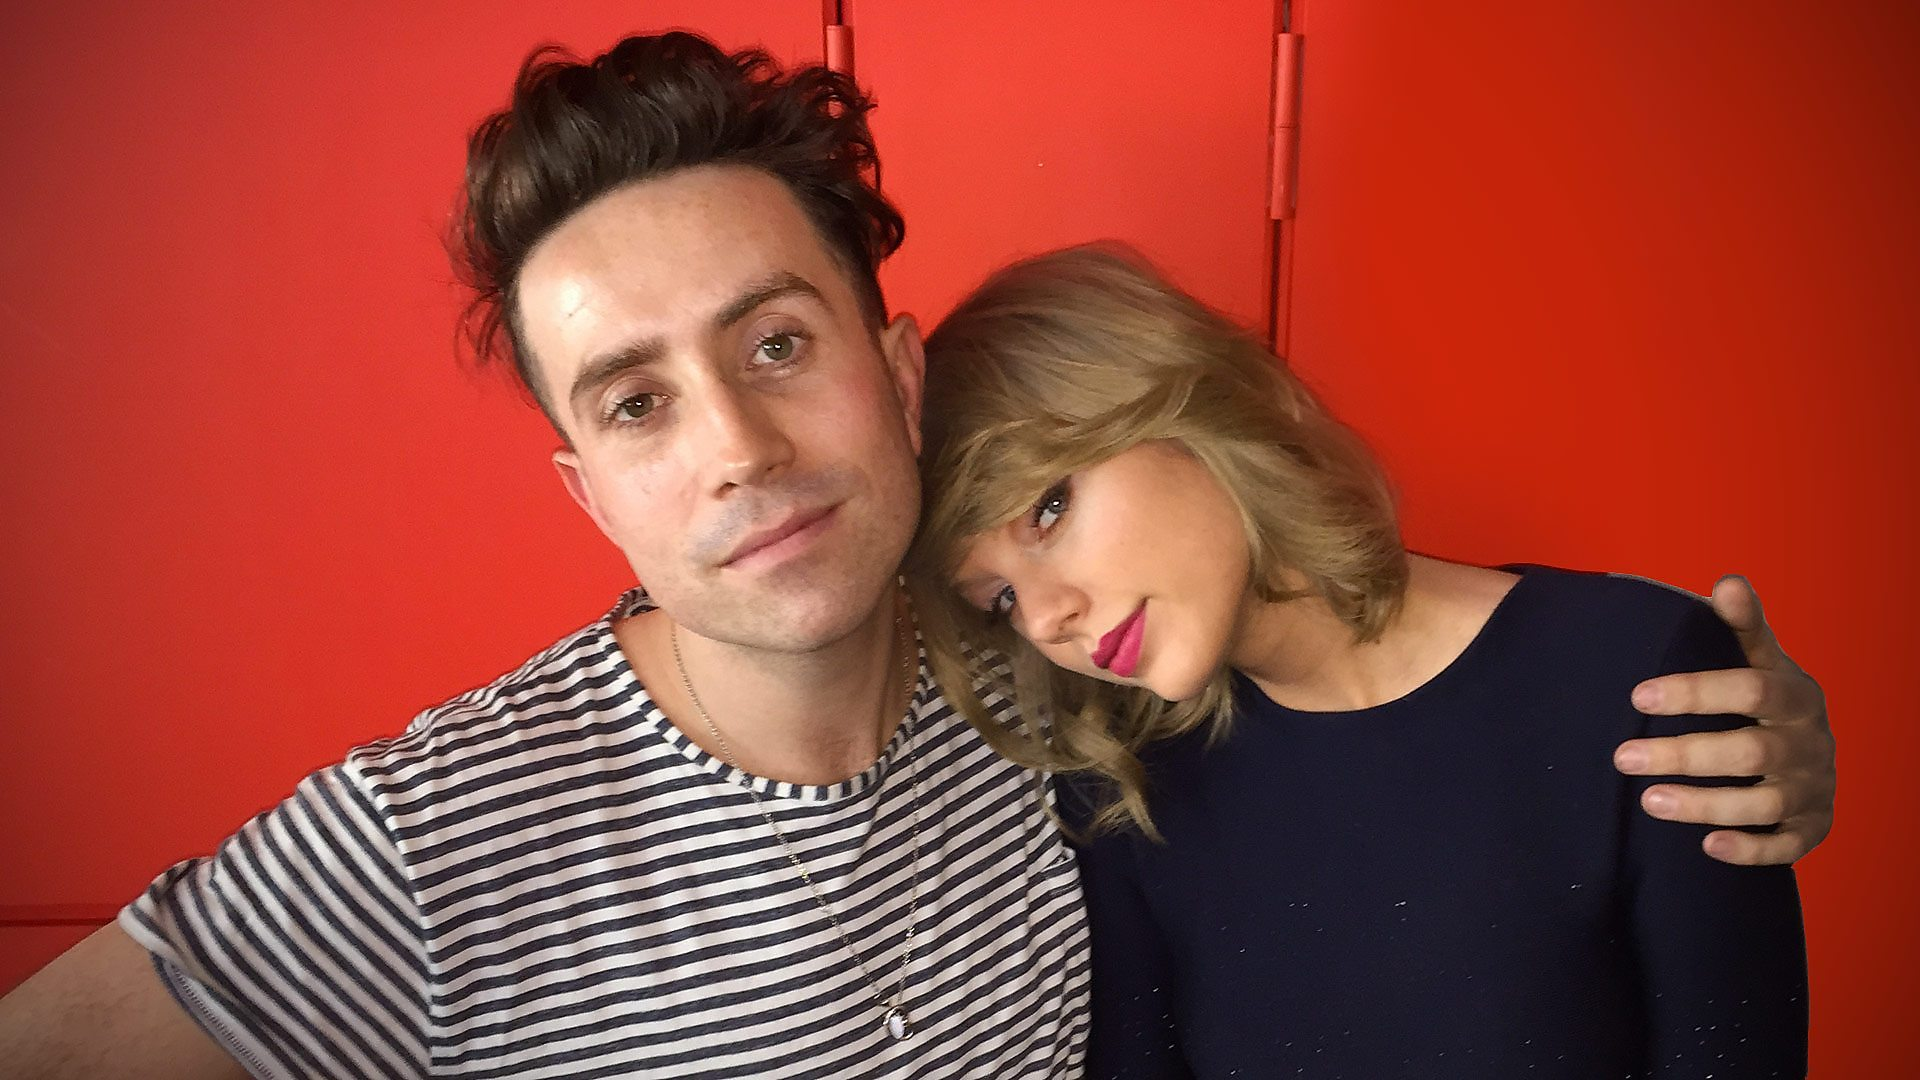 Bbc Radio 1 Nick Grimshaw Just Ed And Taylor Clips